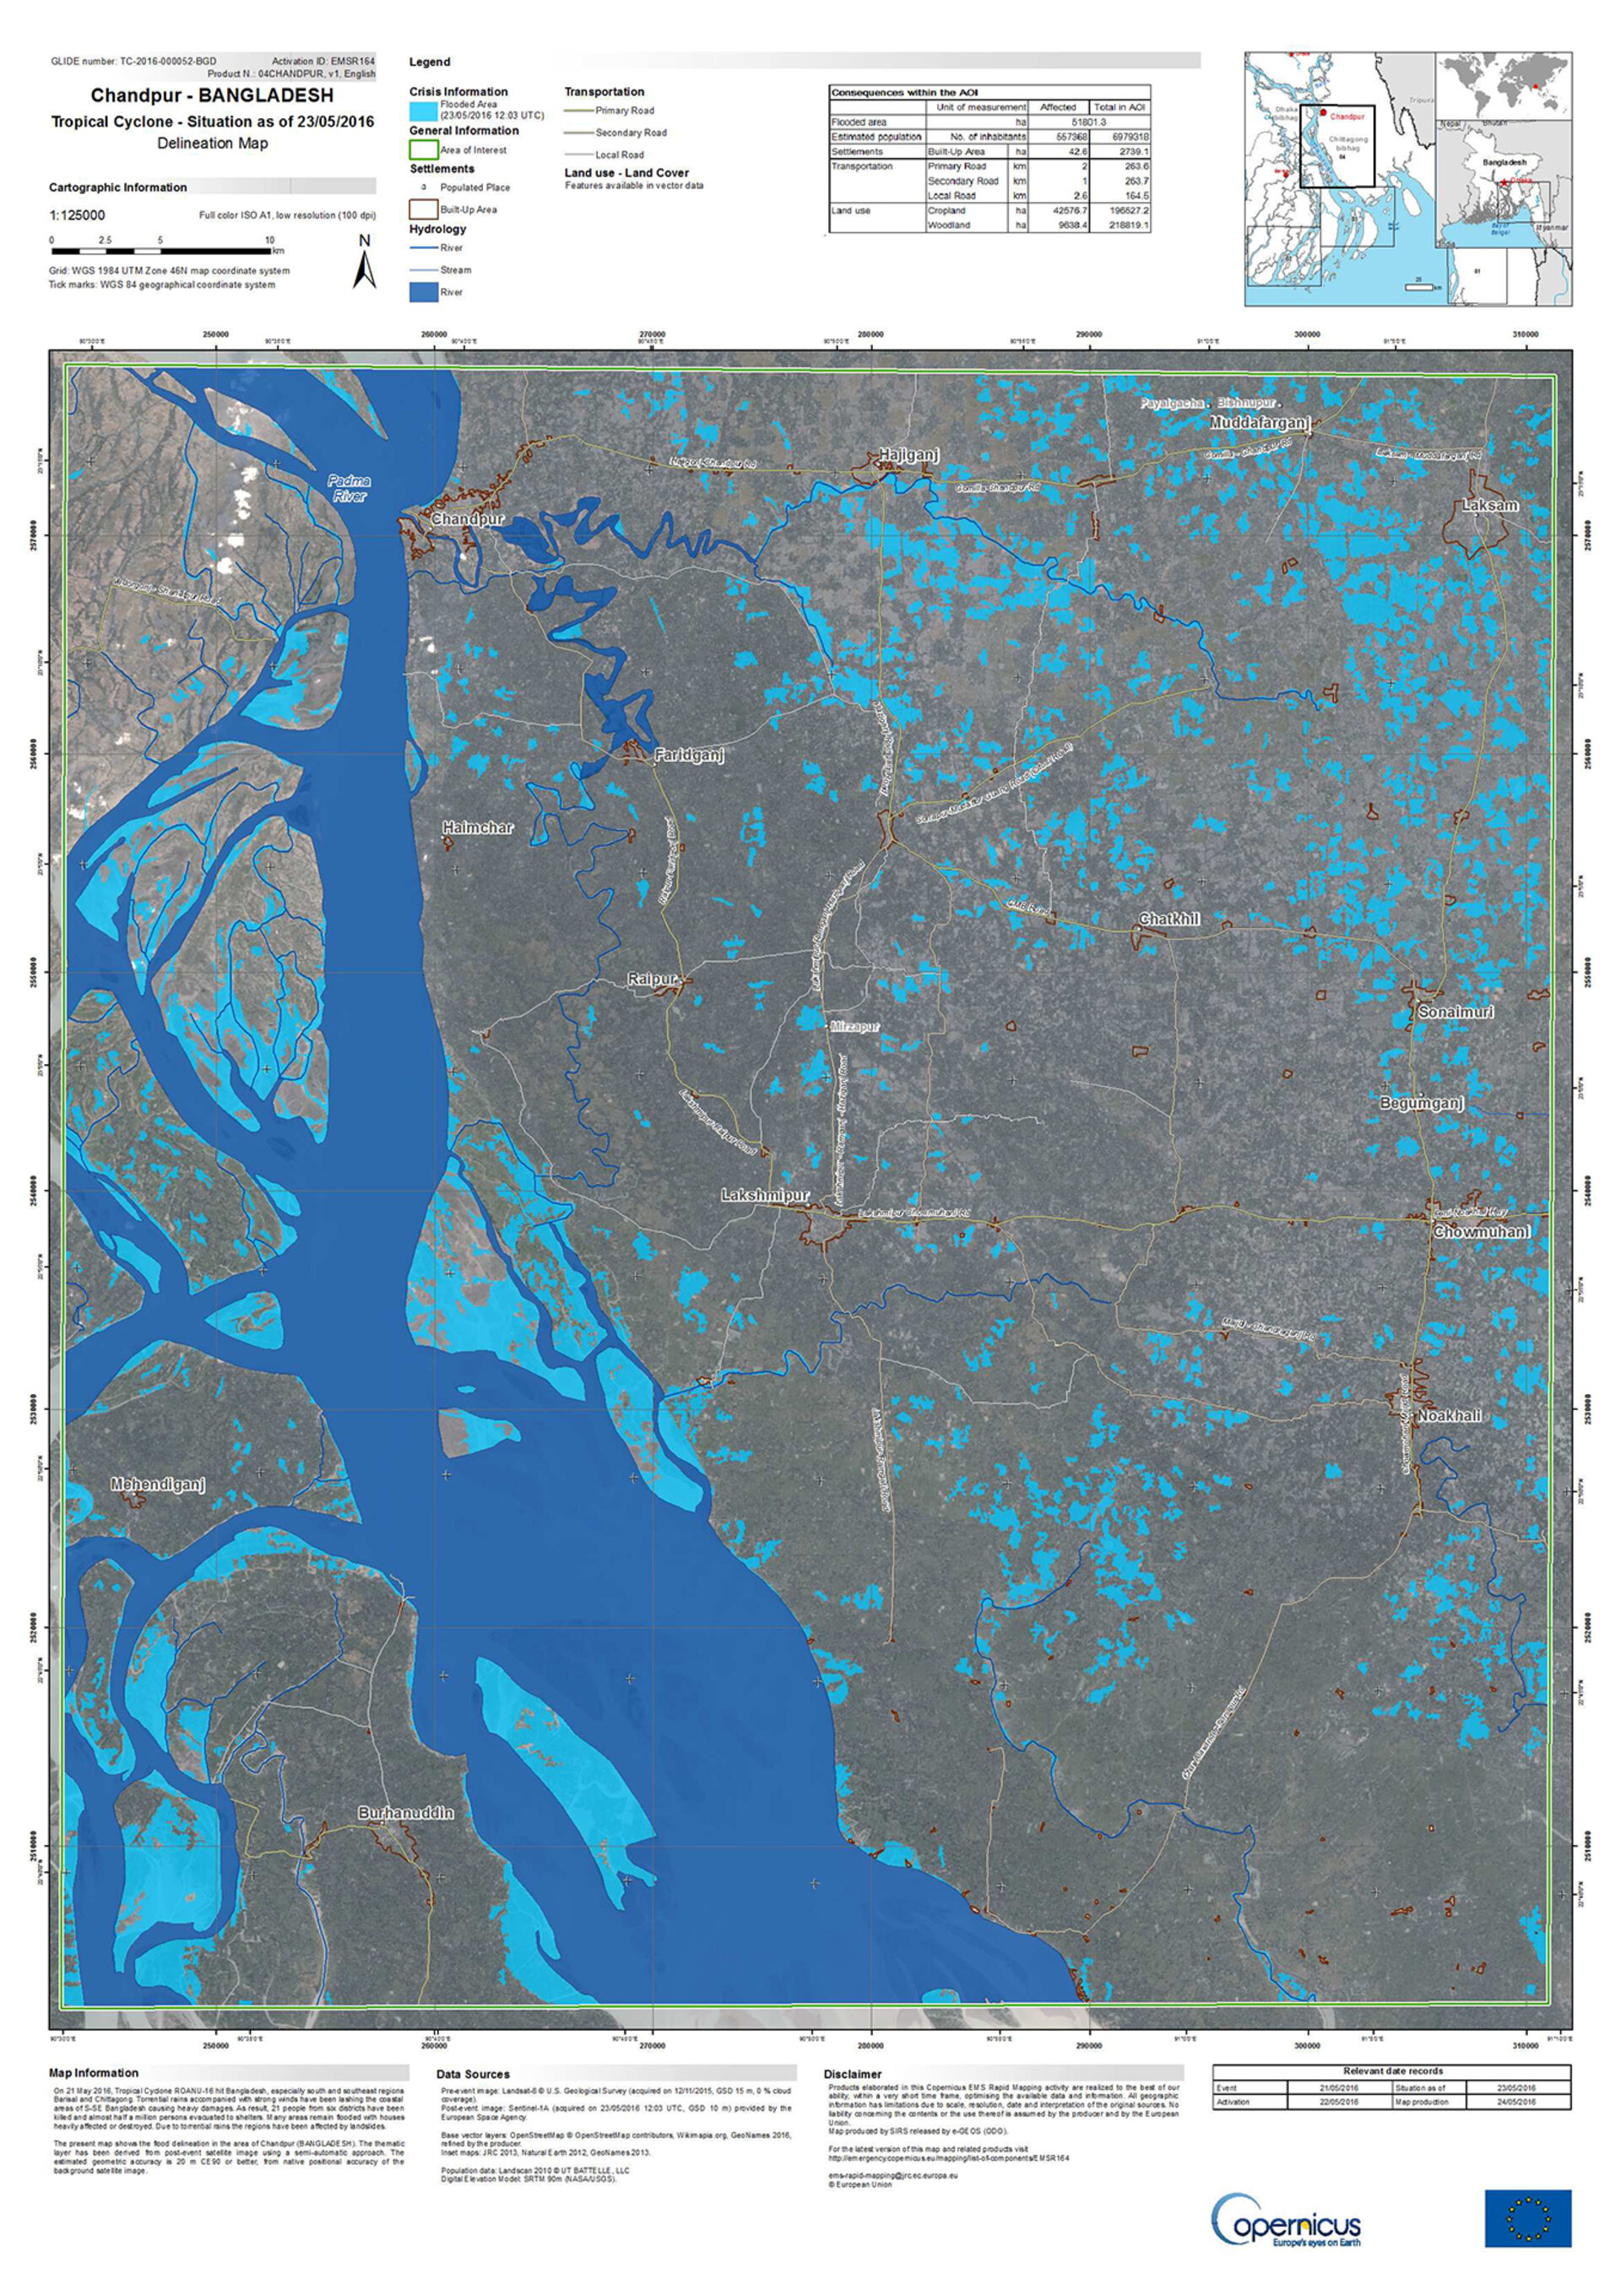 Flood map of Chandpur, Bangladesh